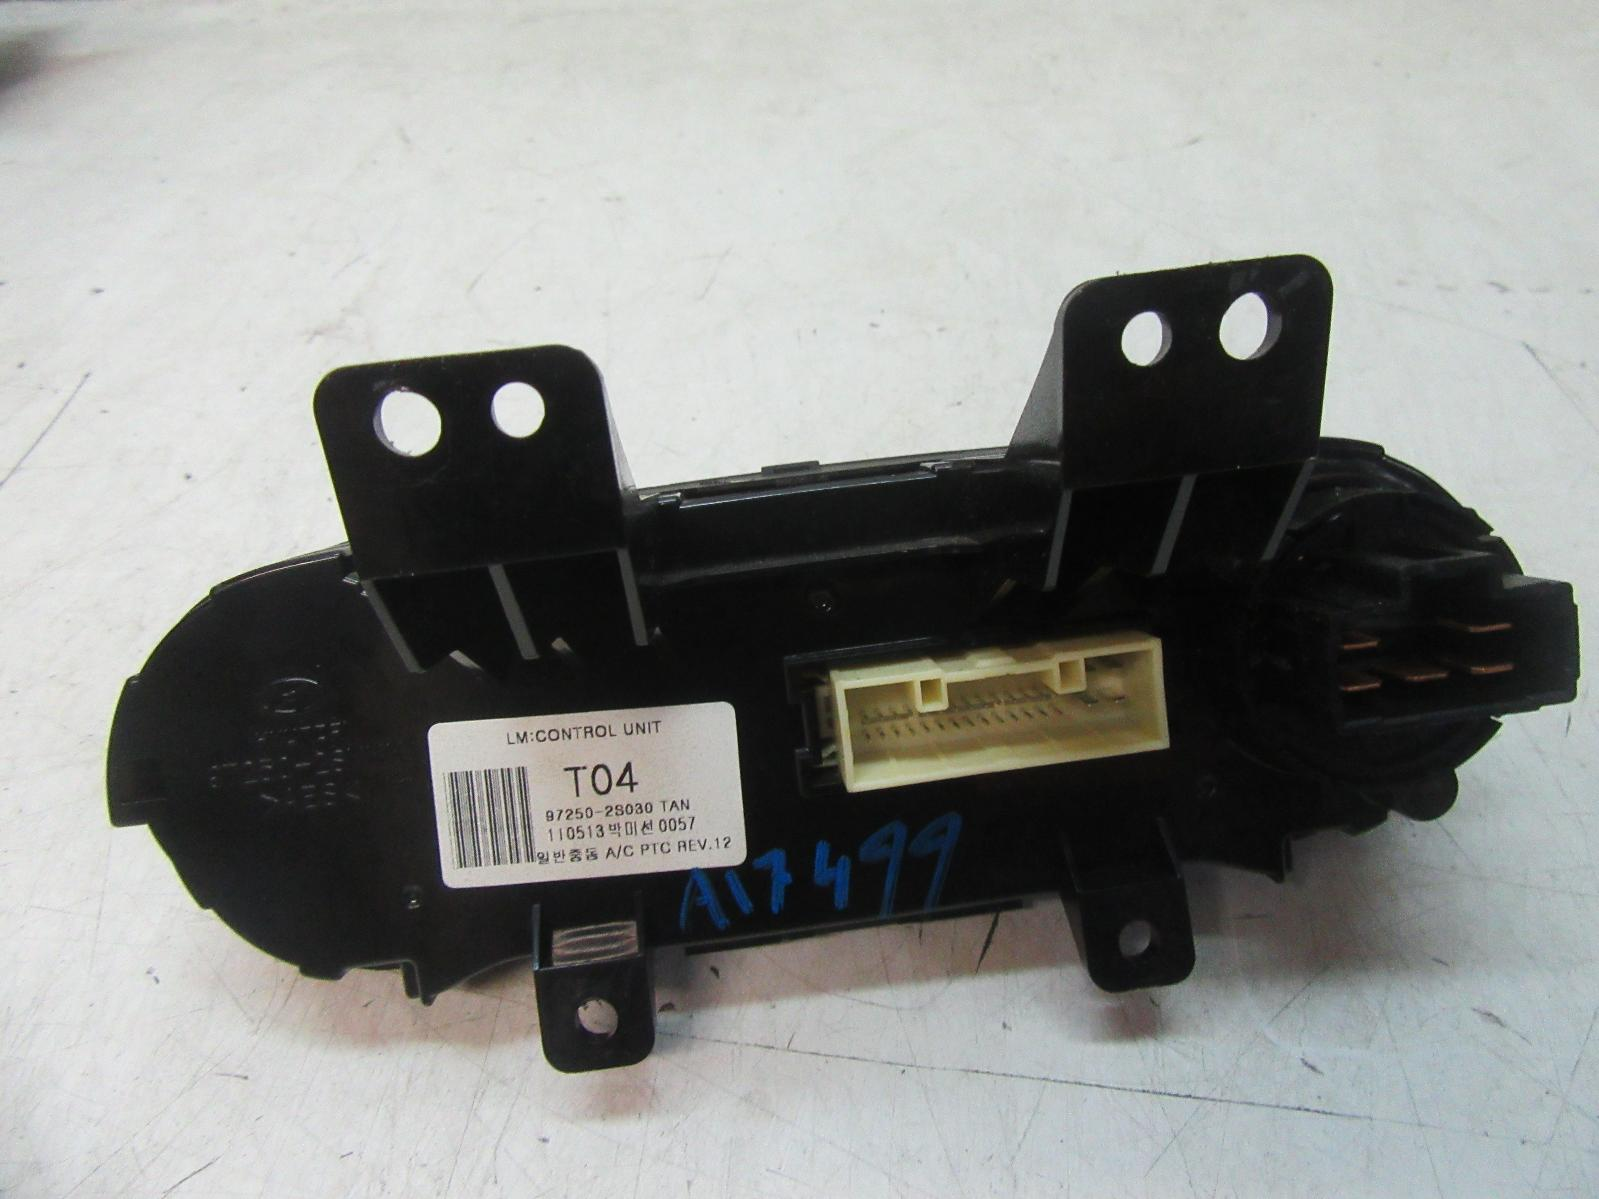 Details about HYUNDAI IX35 HEATER/AC CONTROLS LM SERIES, STANDARD TYPE (2  BUTTONS ON TOP), 11/